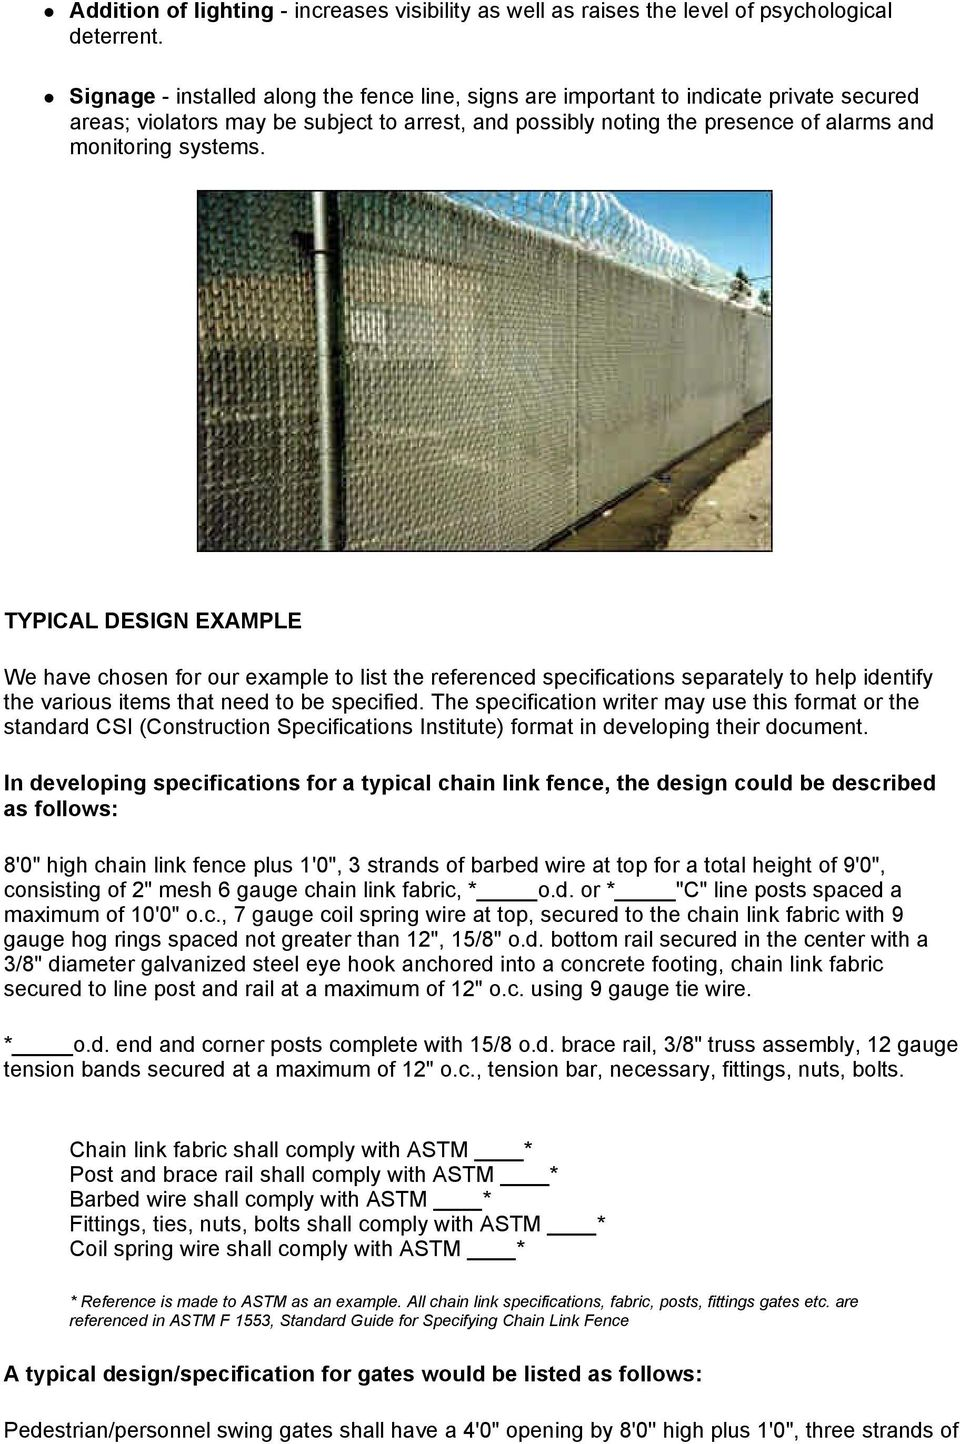 Chain Link Fence Manufacturers Institute Security Fencing